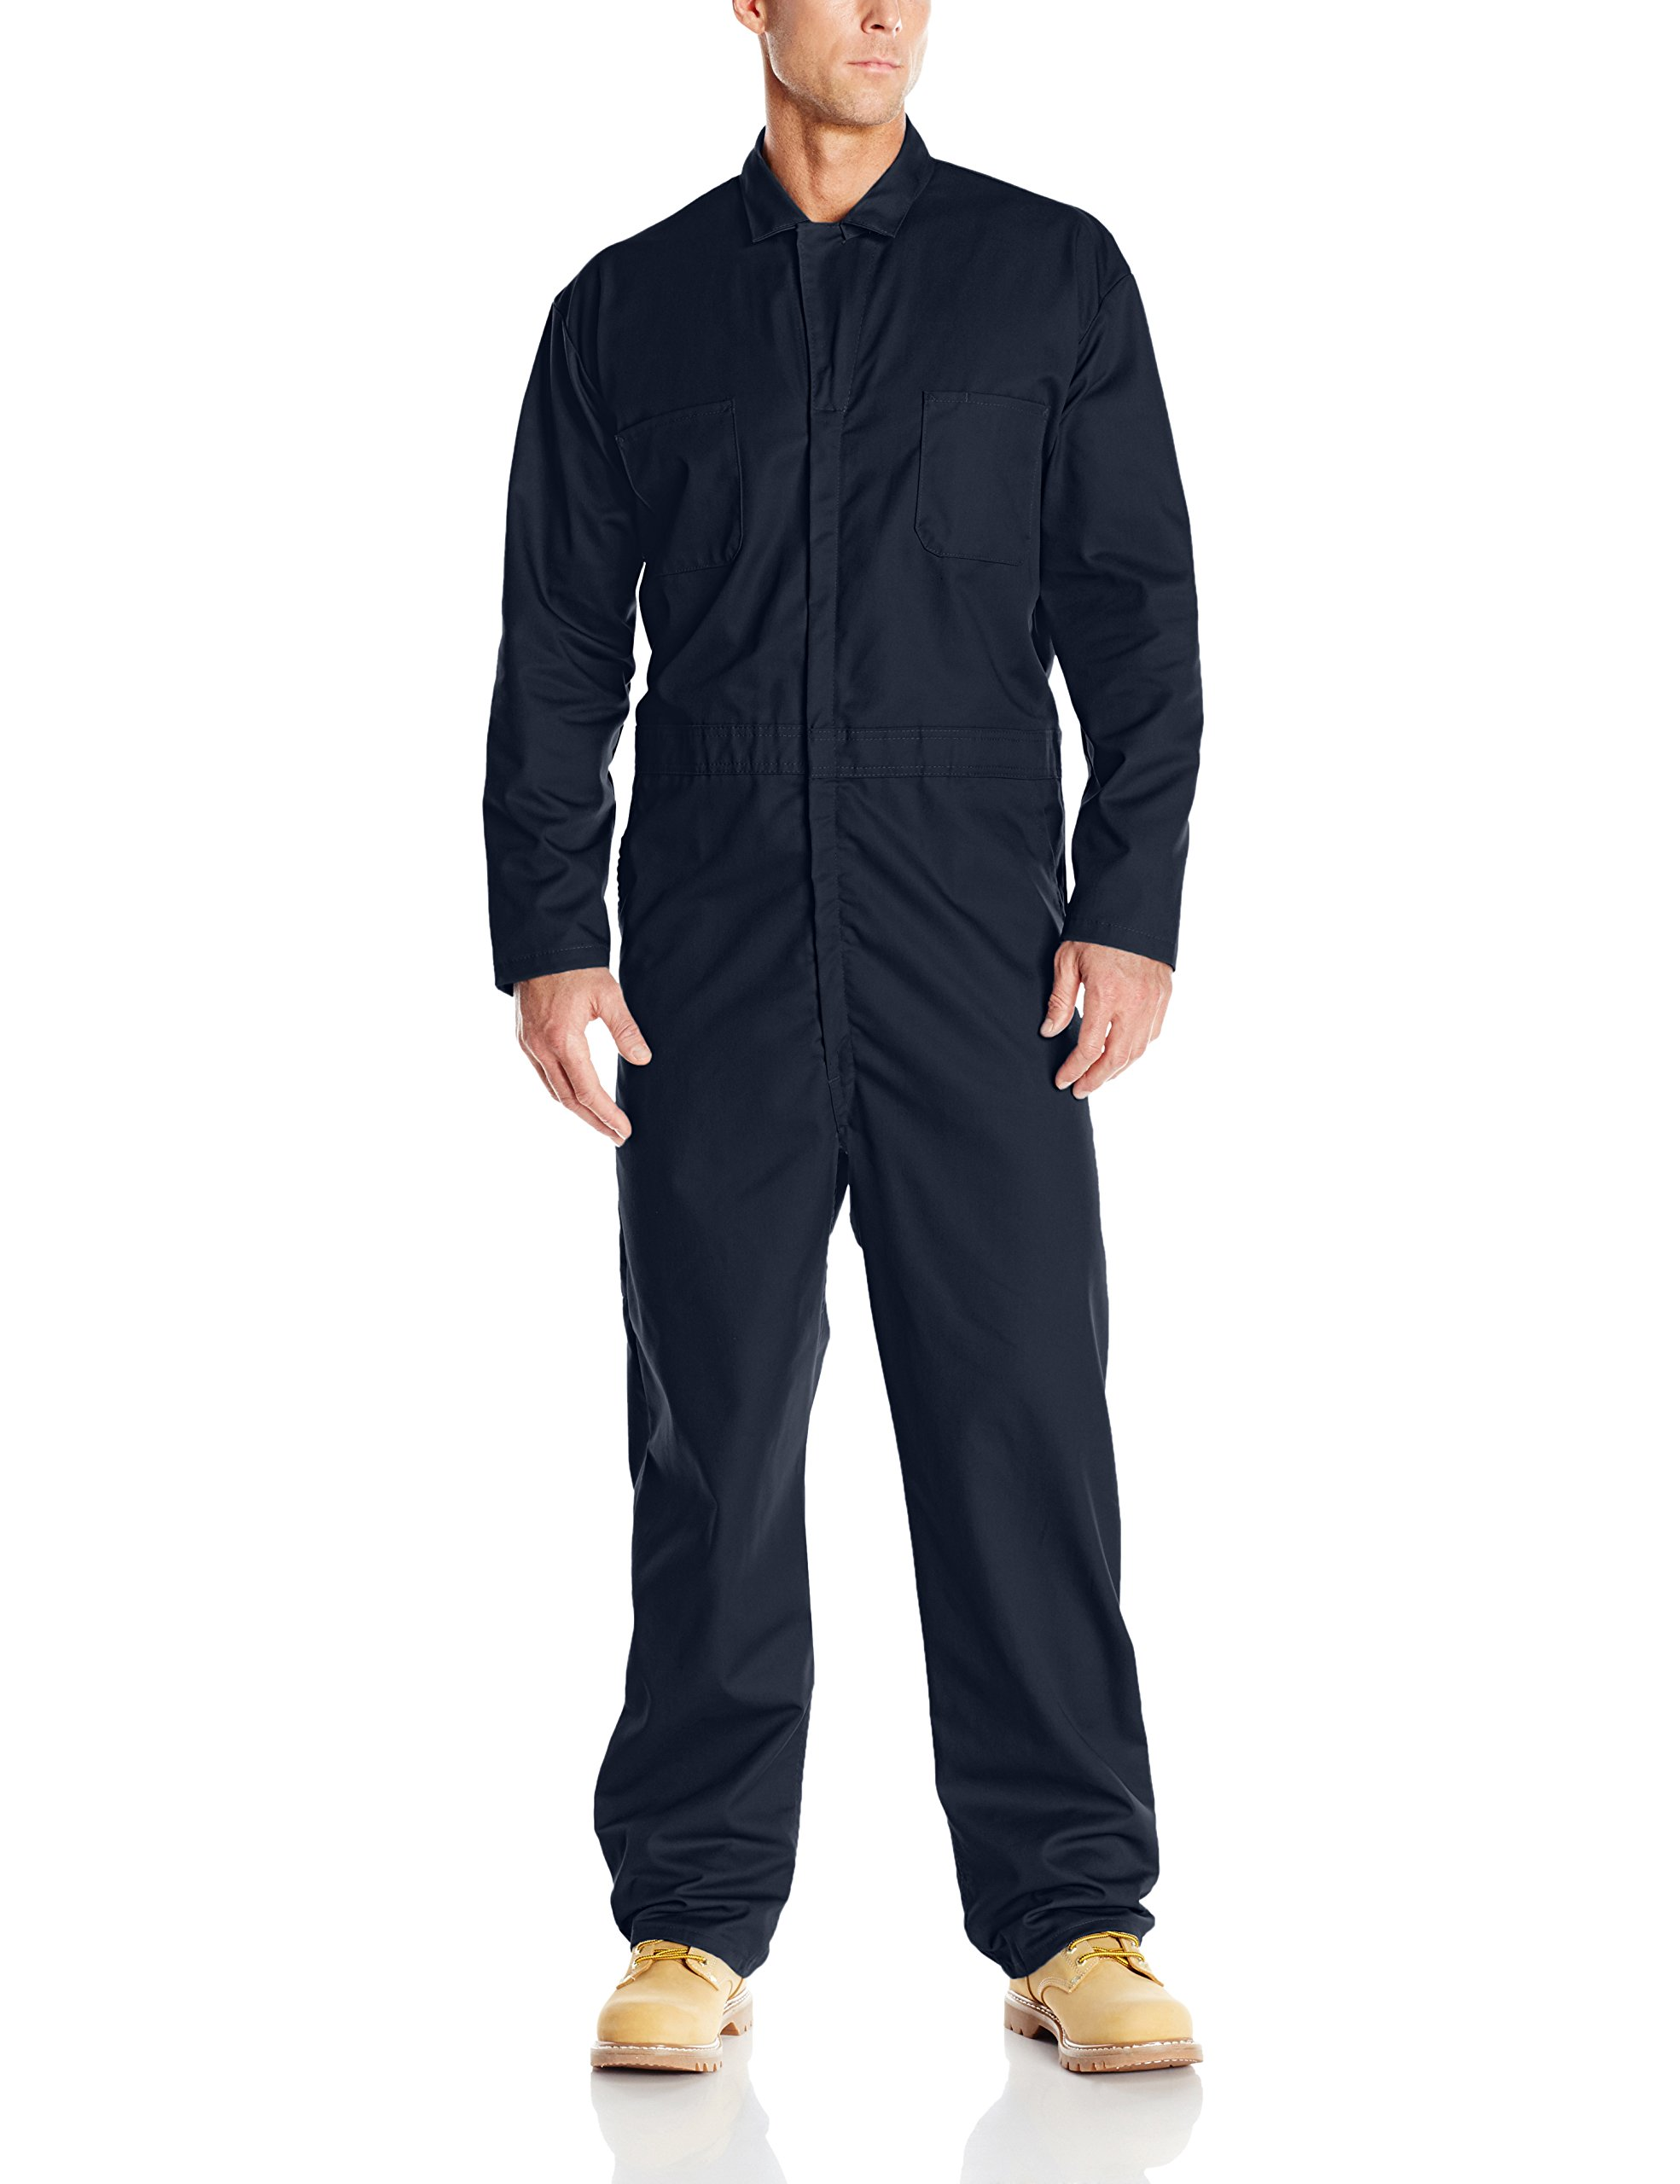 Red Kap Men's Long Sleeve Twill Action Back Coverall, Navy, 34 by Red Kap